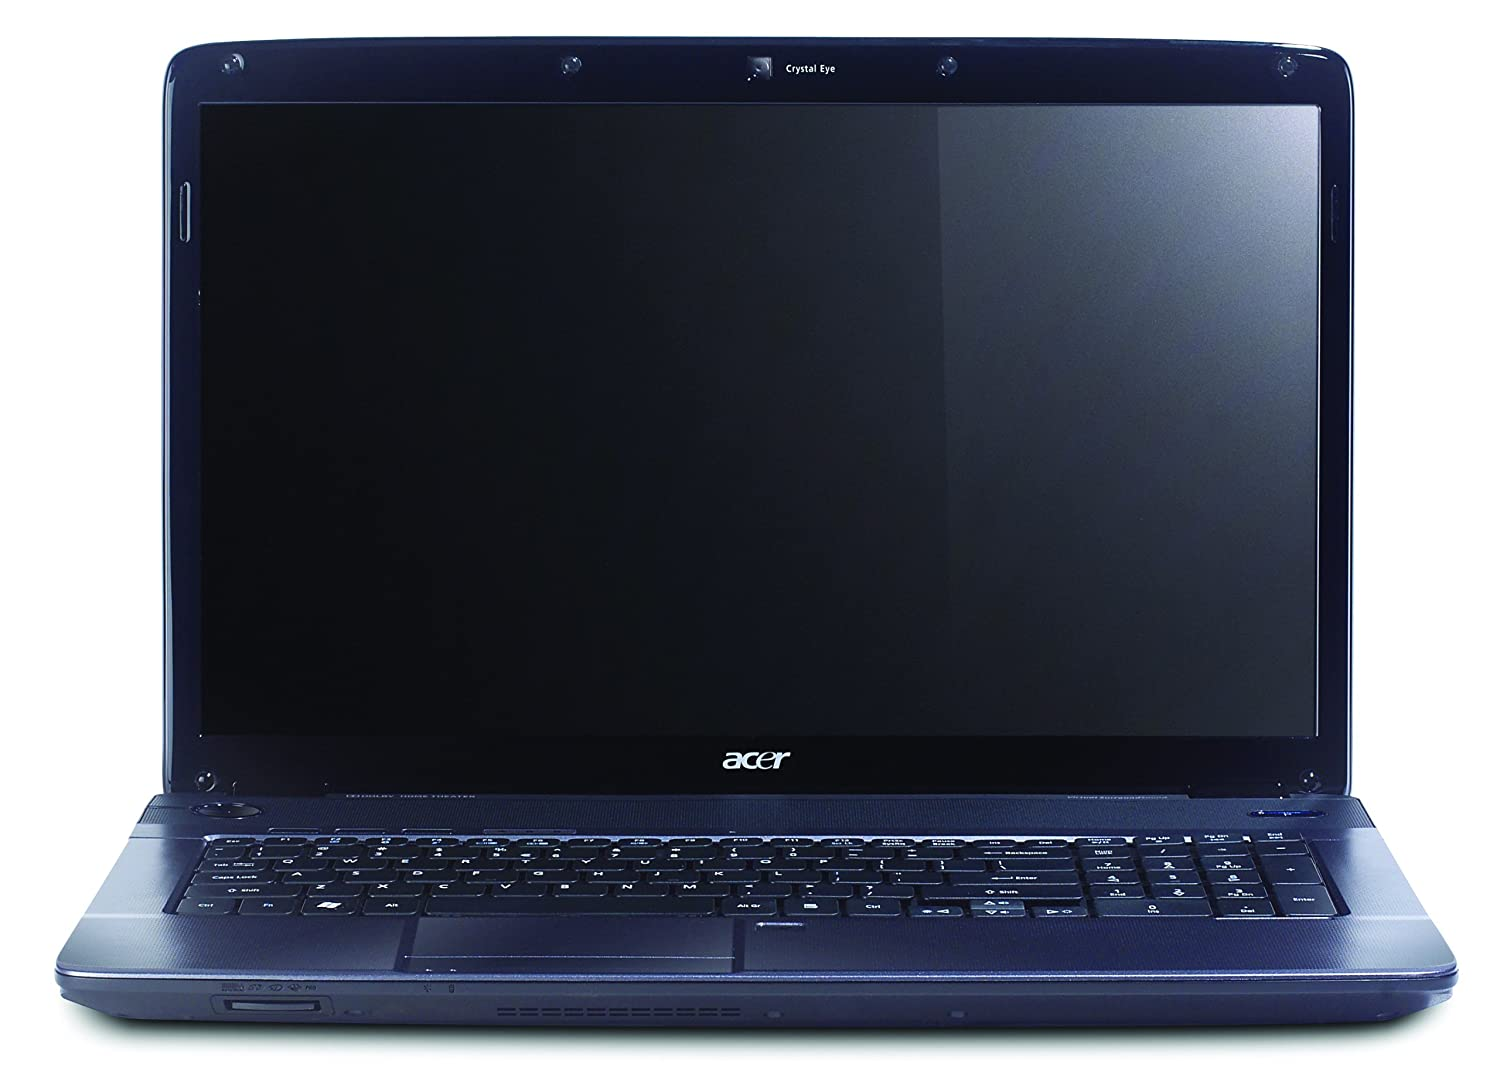 Acer Aspire 7736G Intel Graphics Drivers for Windows 7